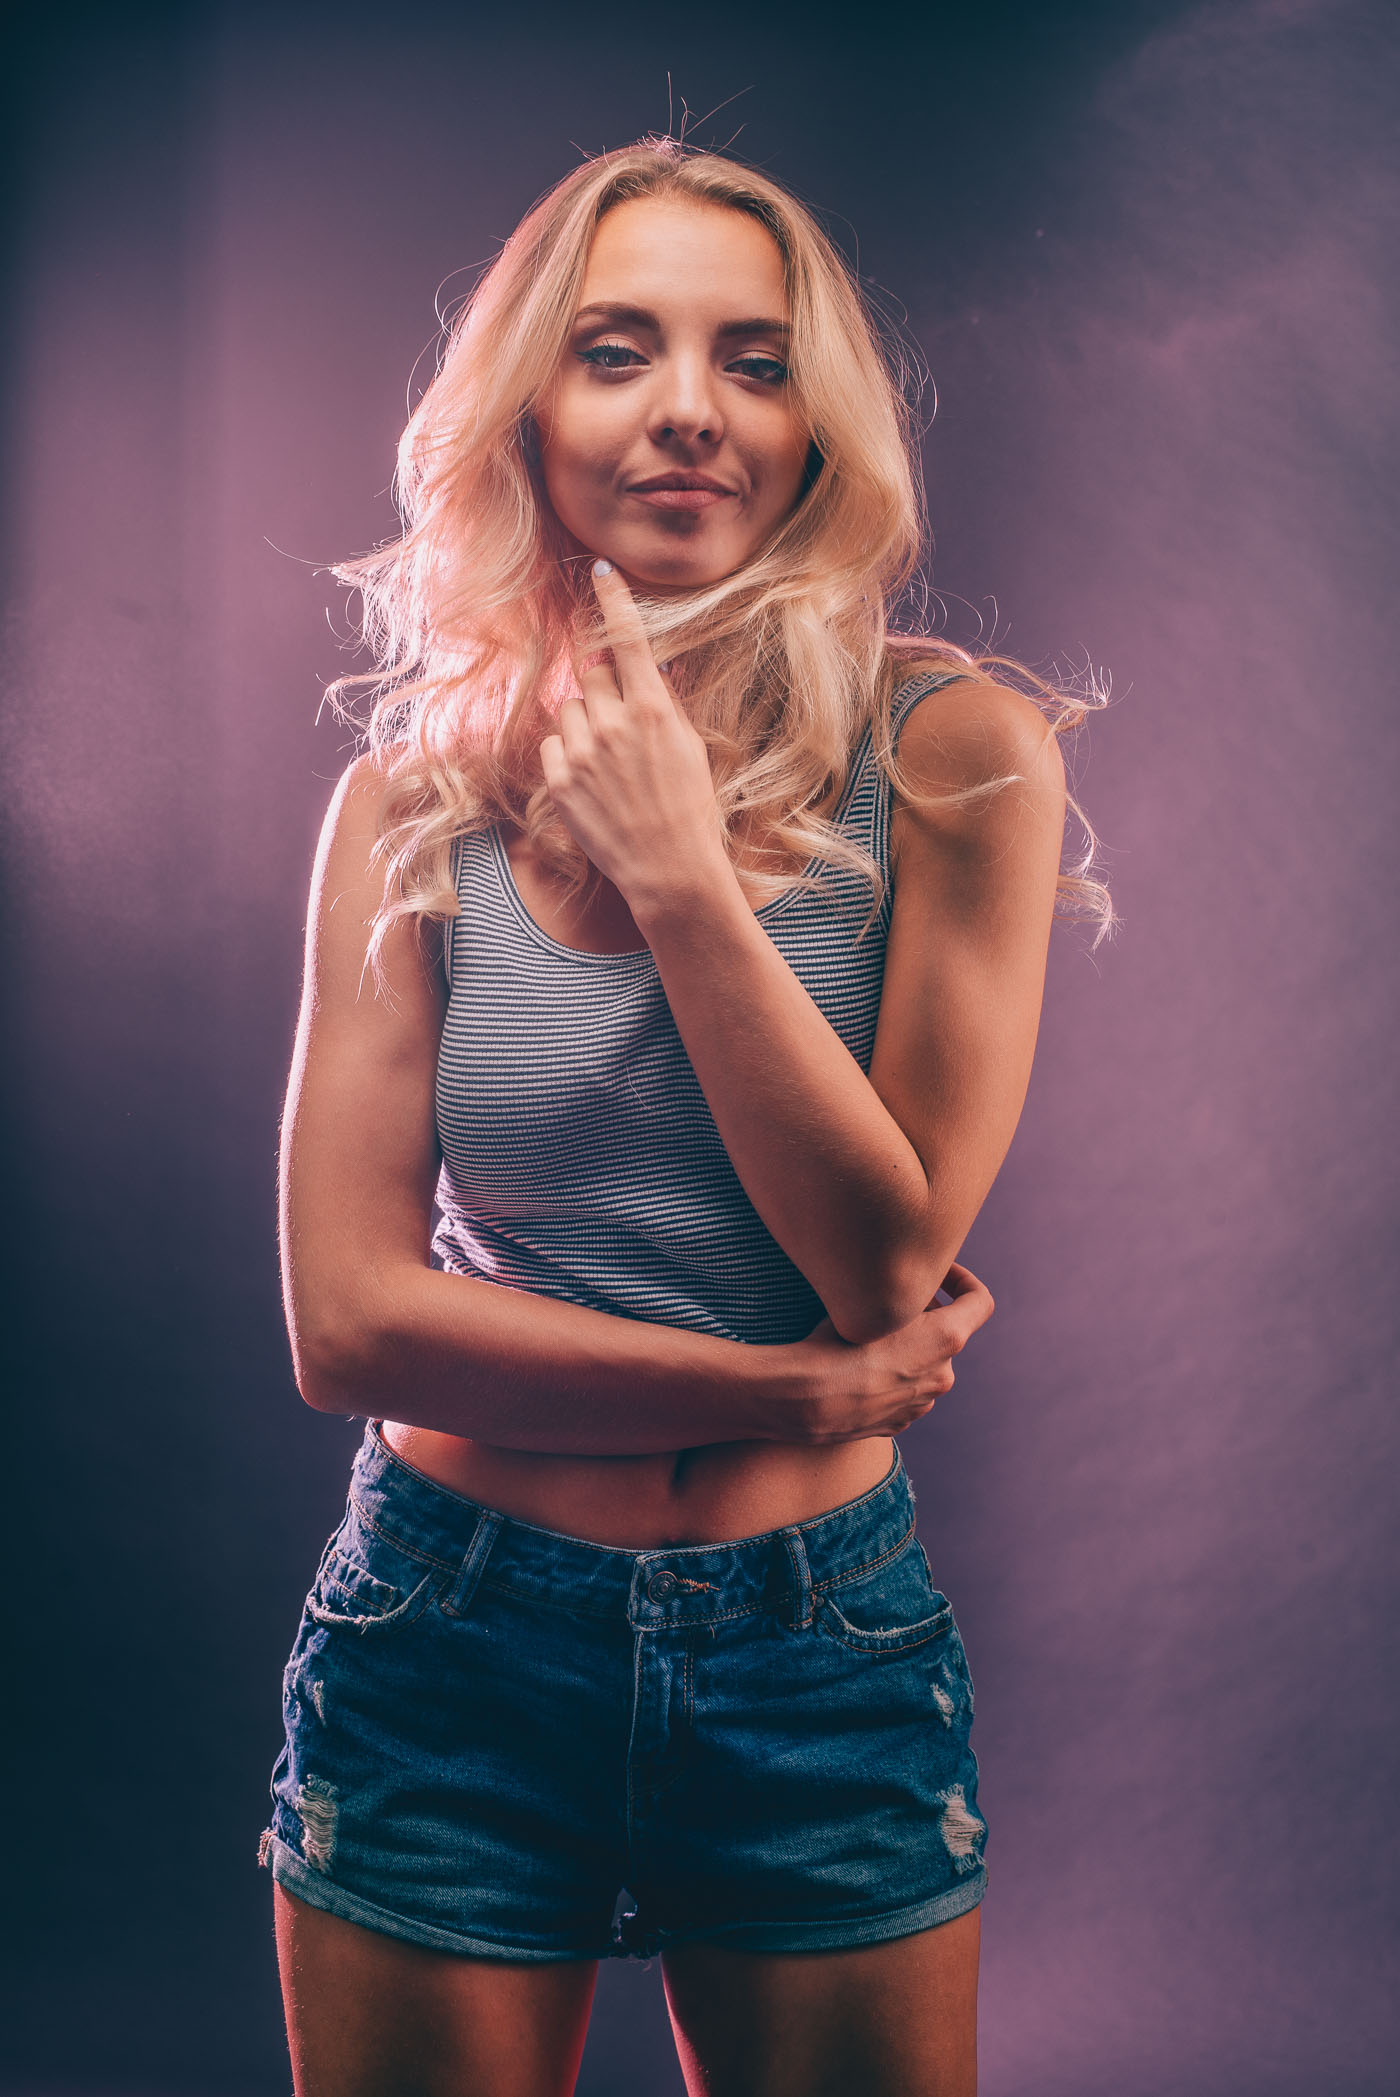 Studio photography shot of model Anna Hrehlevych in a crop top and jean shorts against a navy and pink background